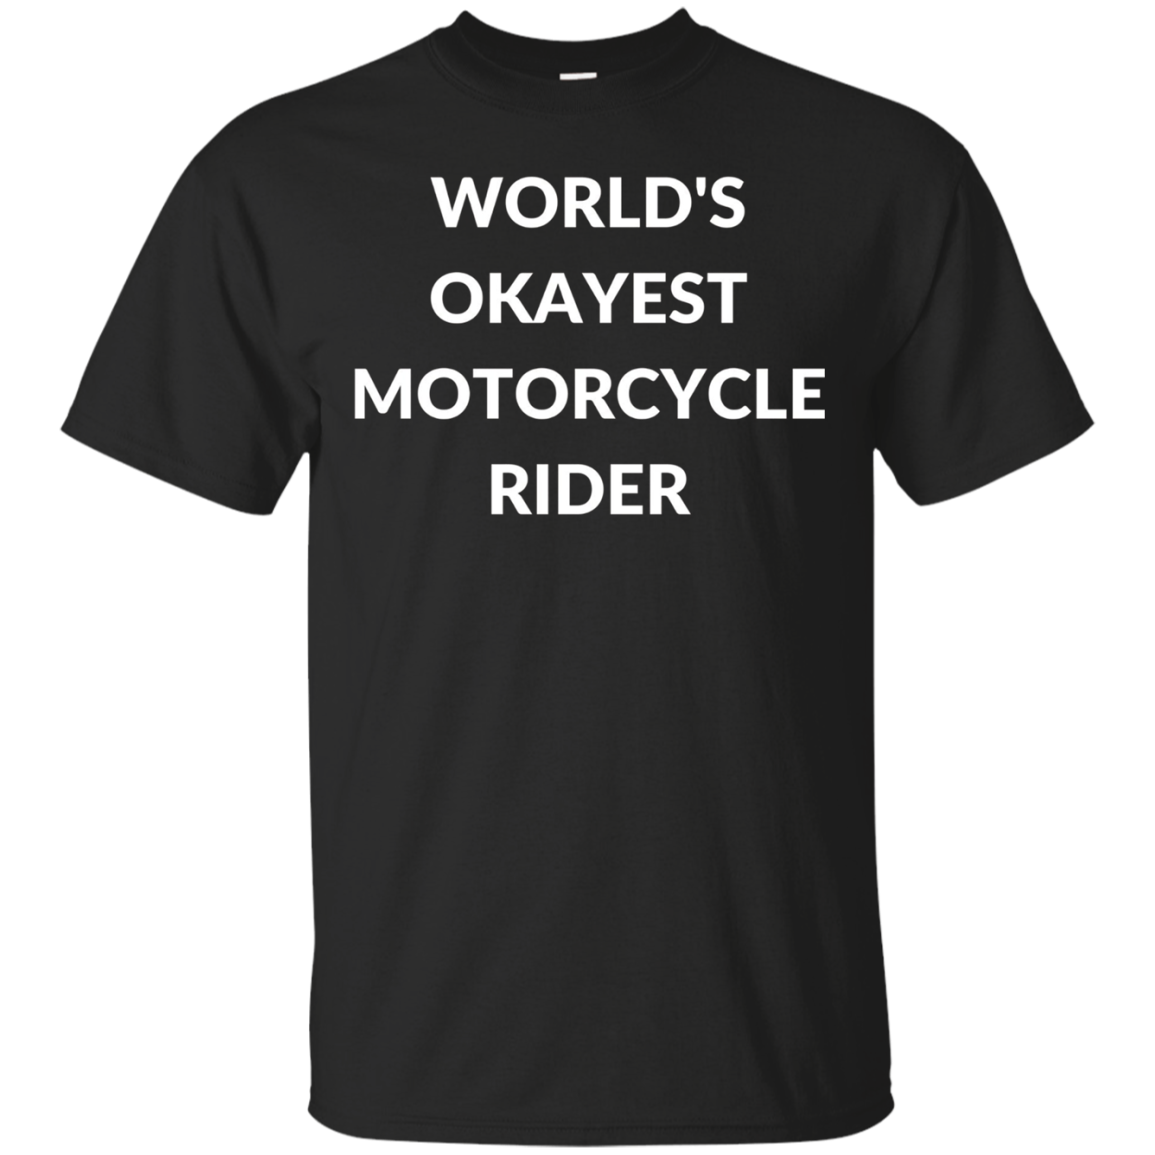 World's Okayest Motorcycle Rider Funny Biker T-Shirt